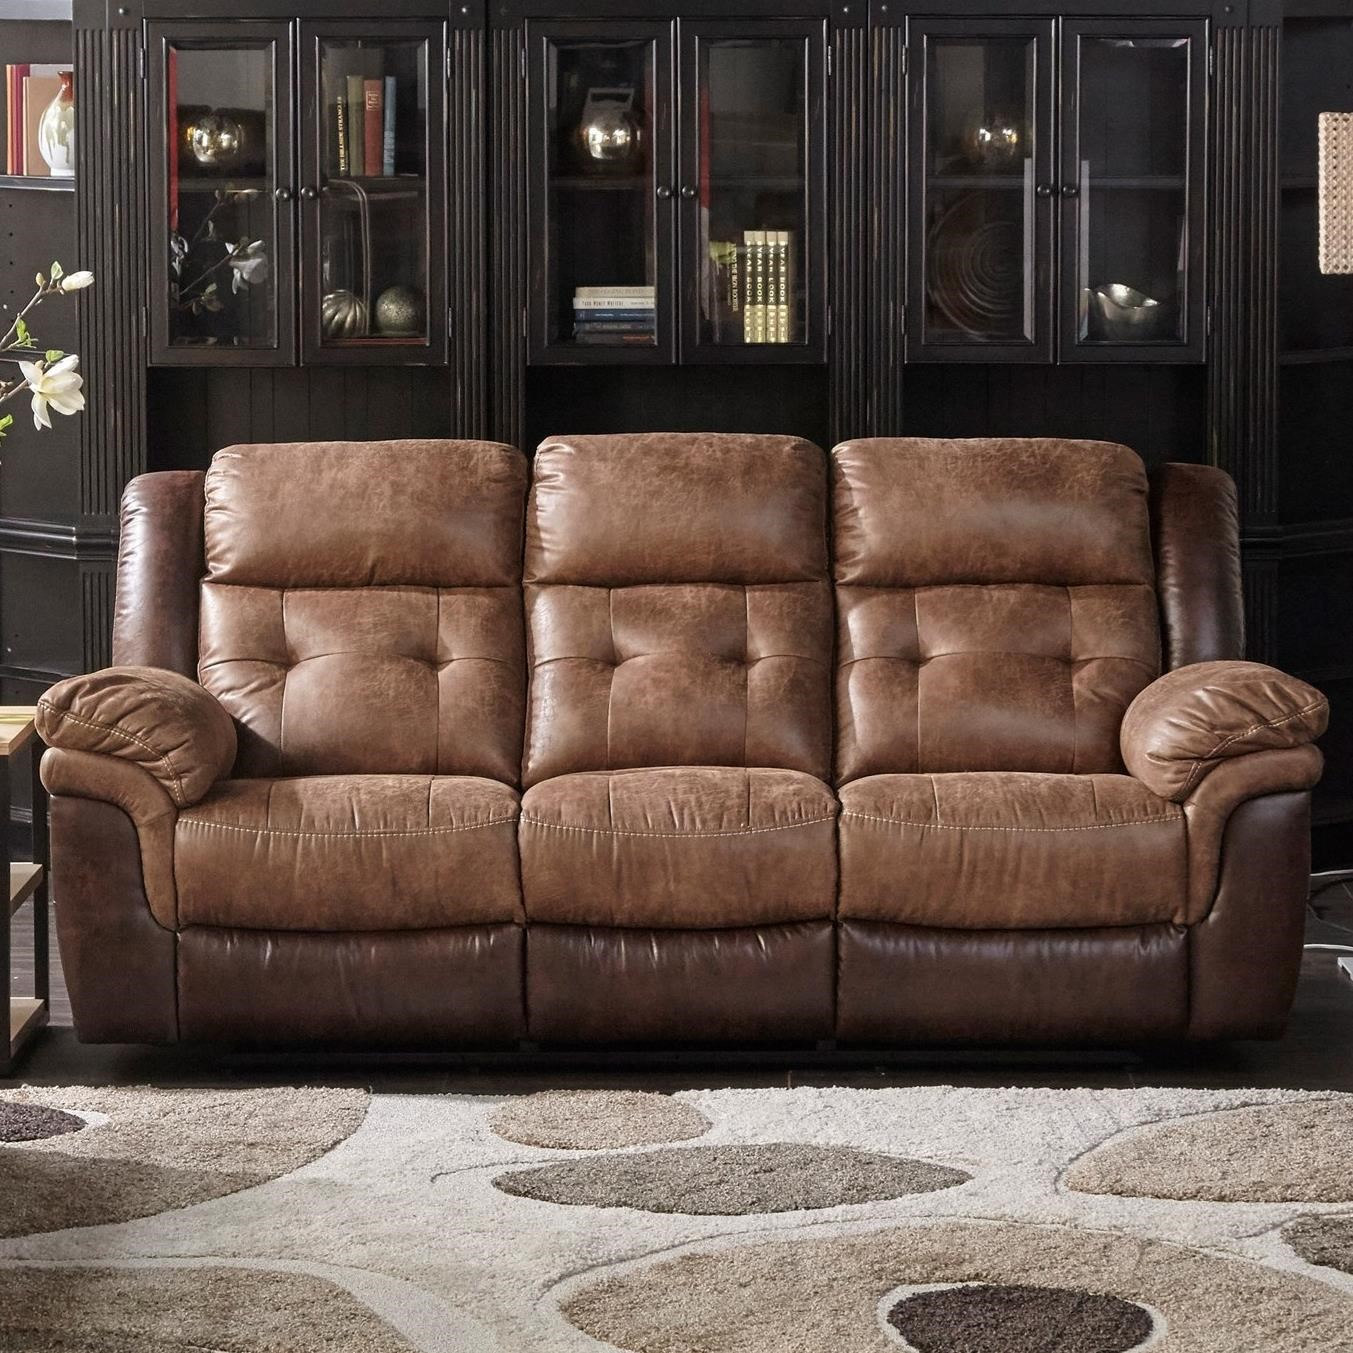 XW5156M Reclining Sofa by Alex Express at Northeast Factory Direct